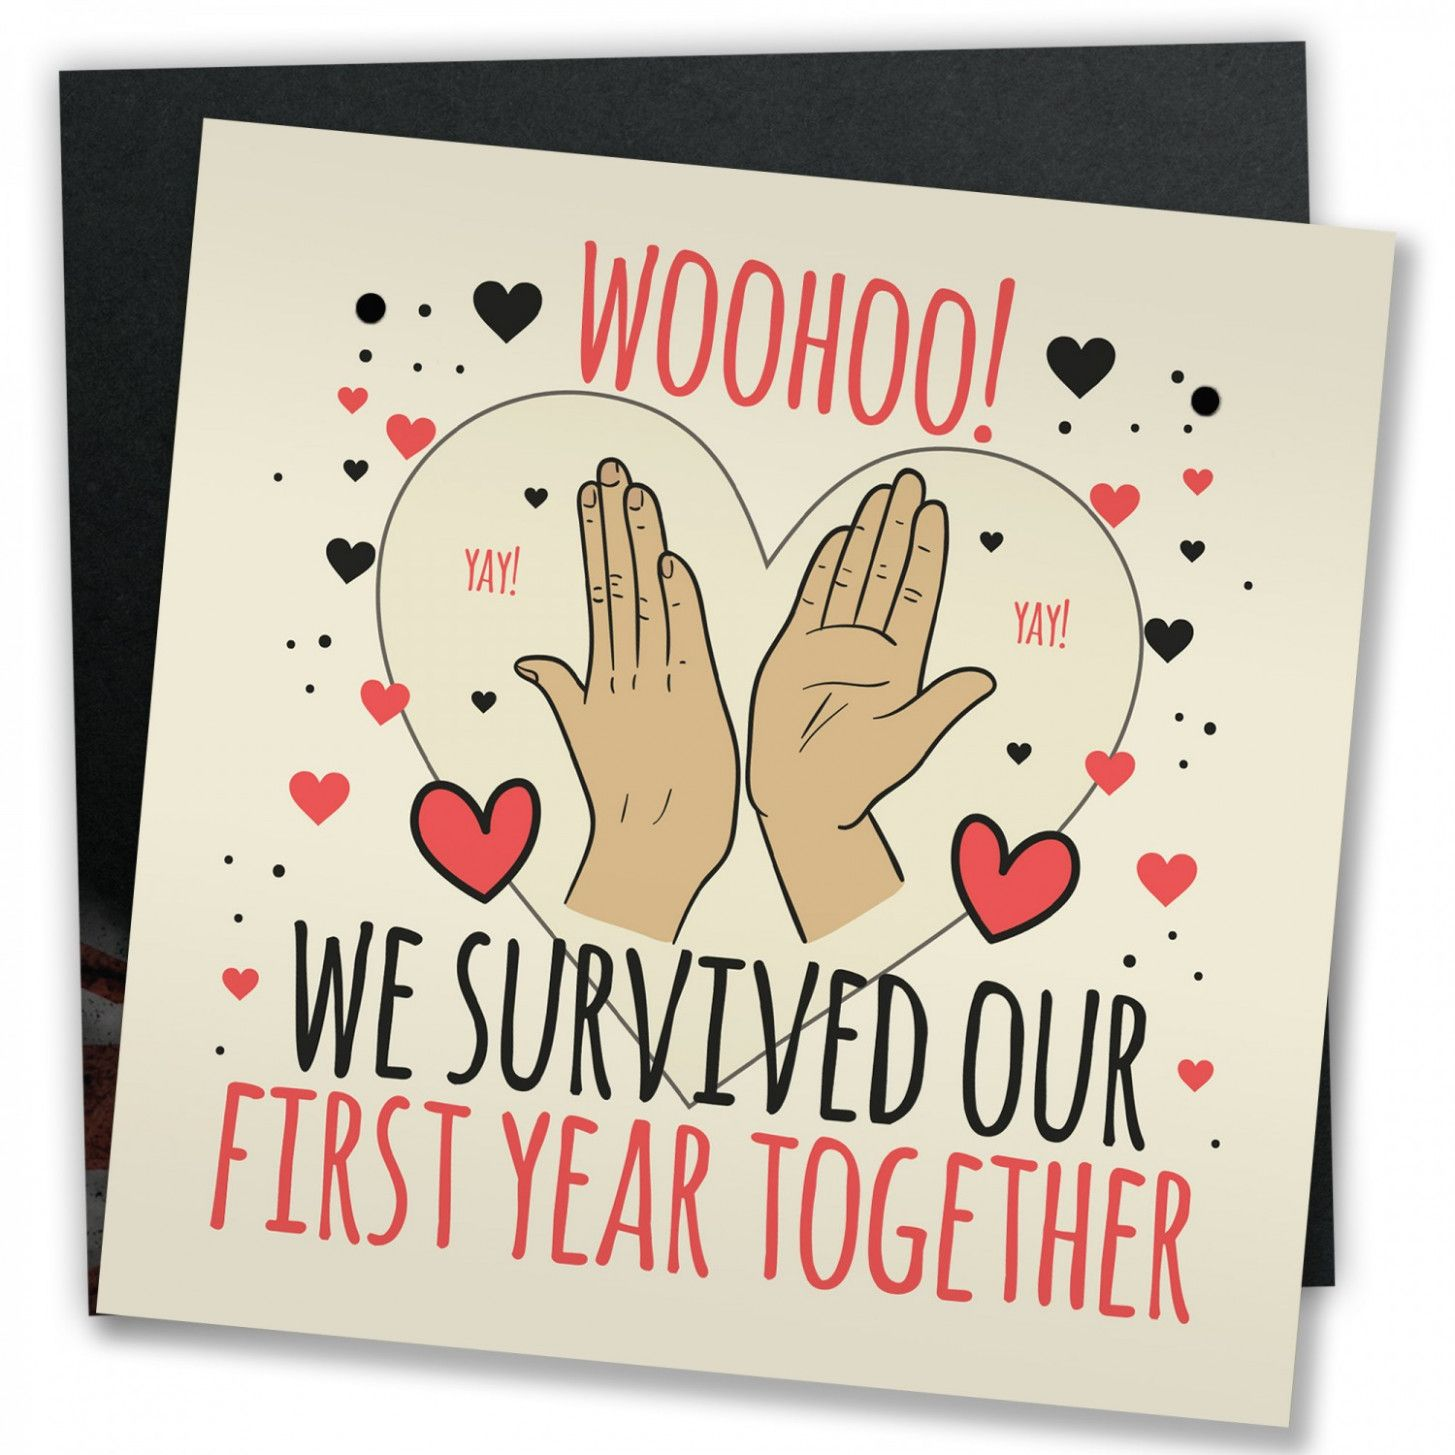 11st Anniversary Card First Anniversary Gift For Him Her Plaque 1st Anniversary Cards First Anniversary Gifts Anniversary Cards For Him